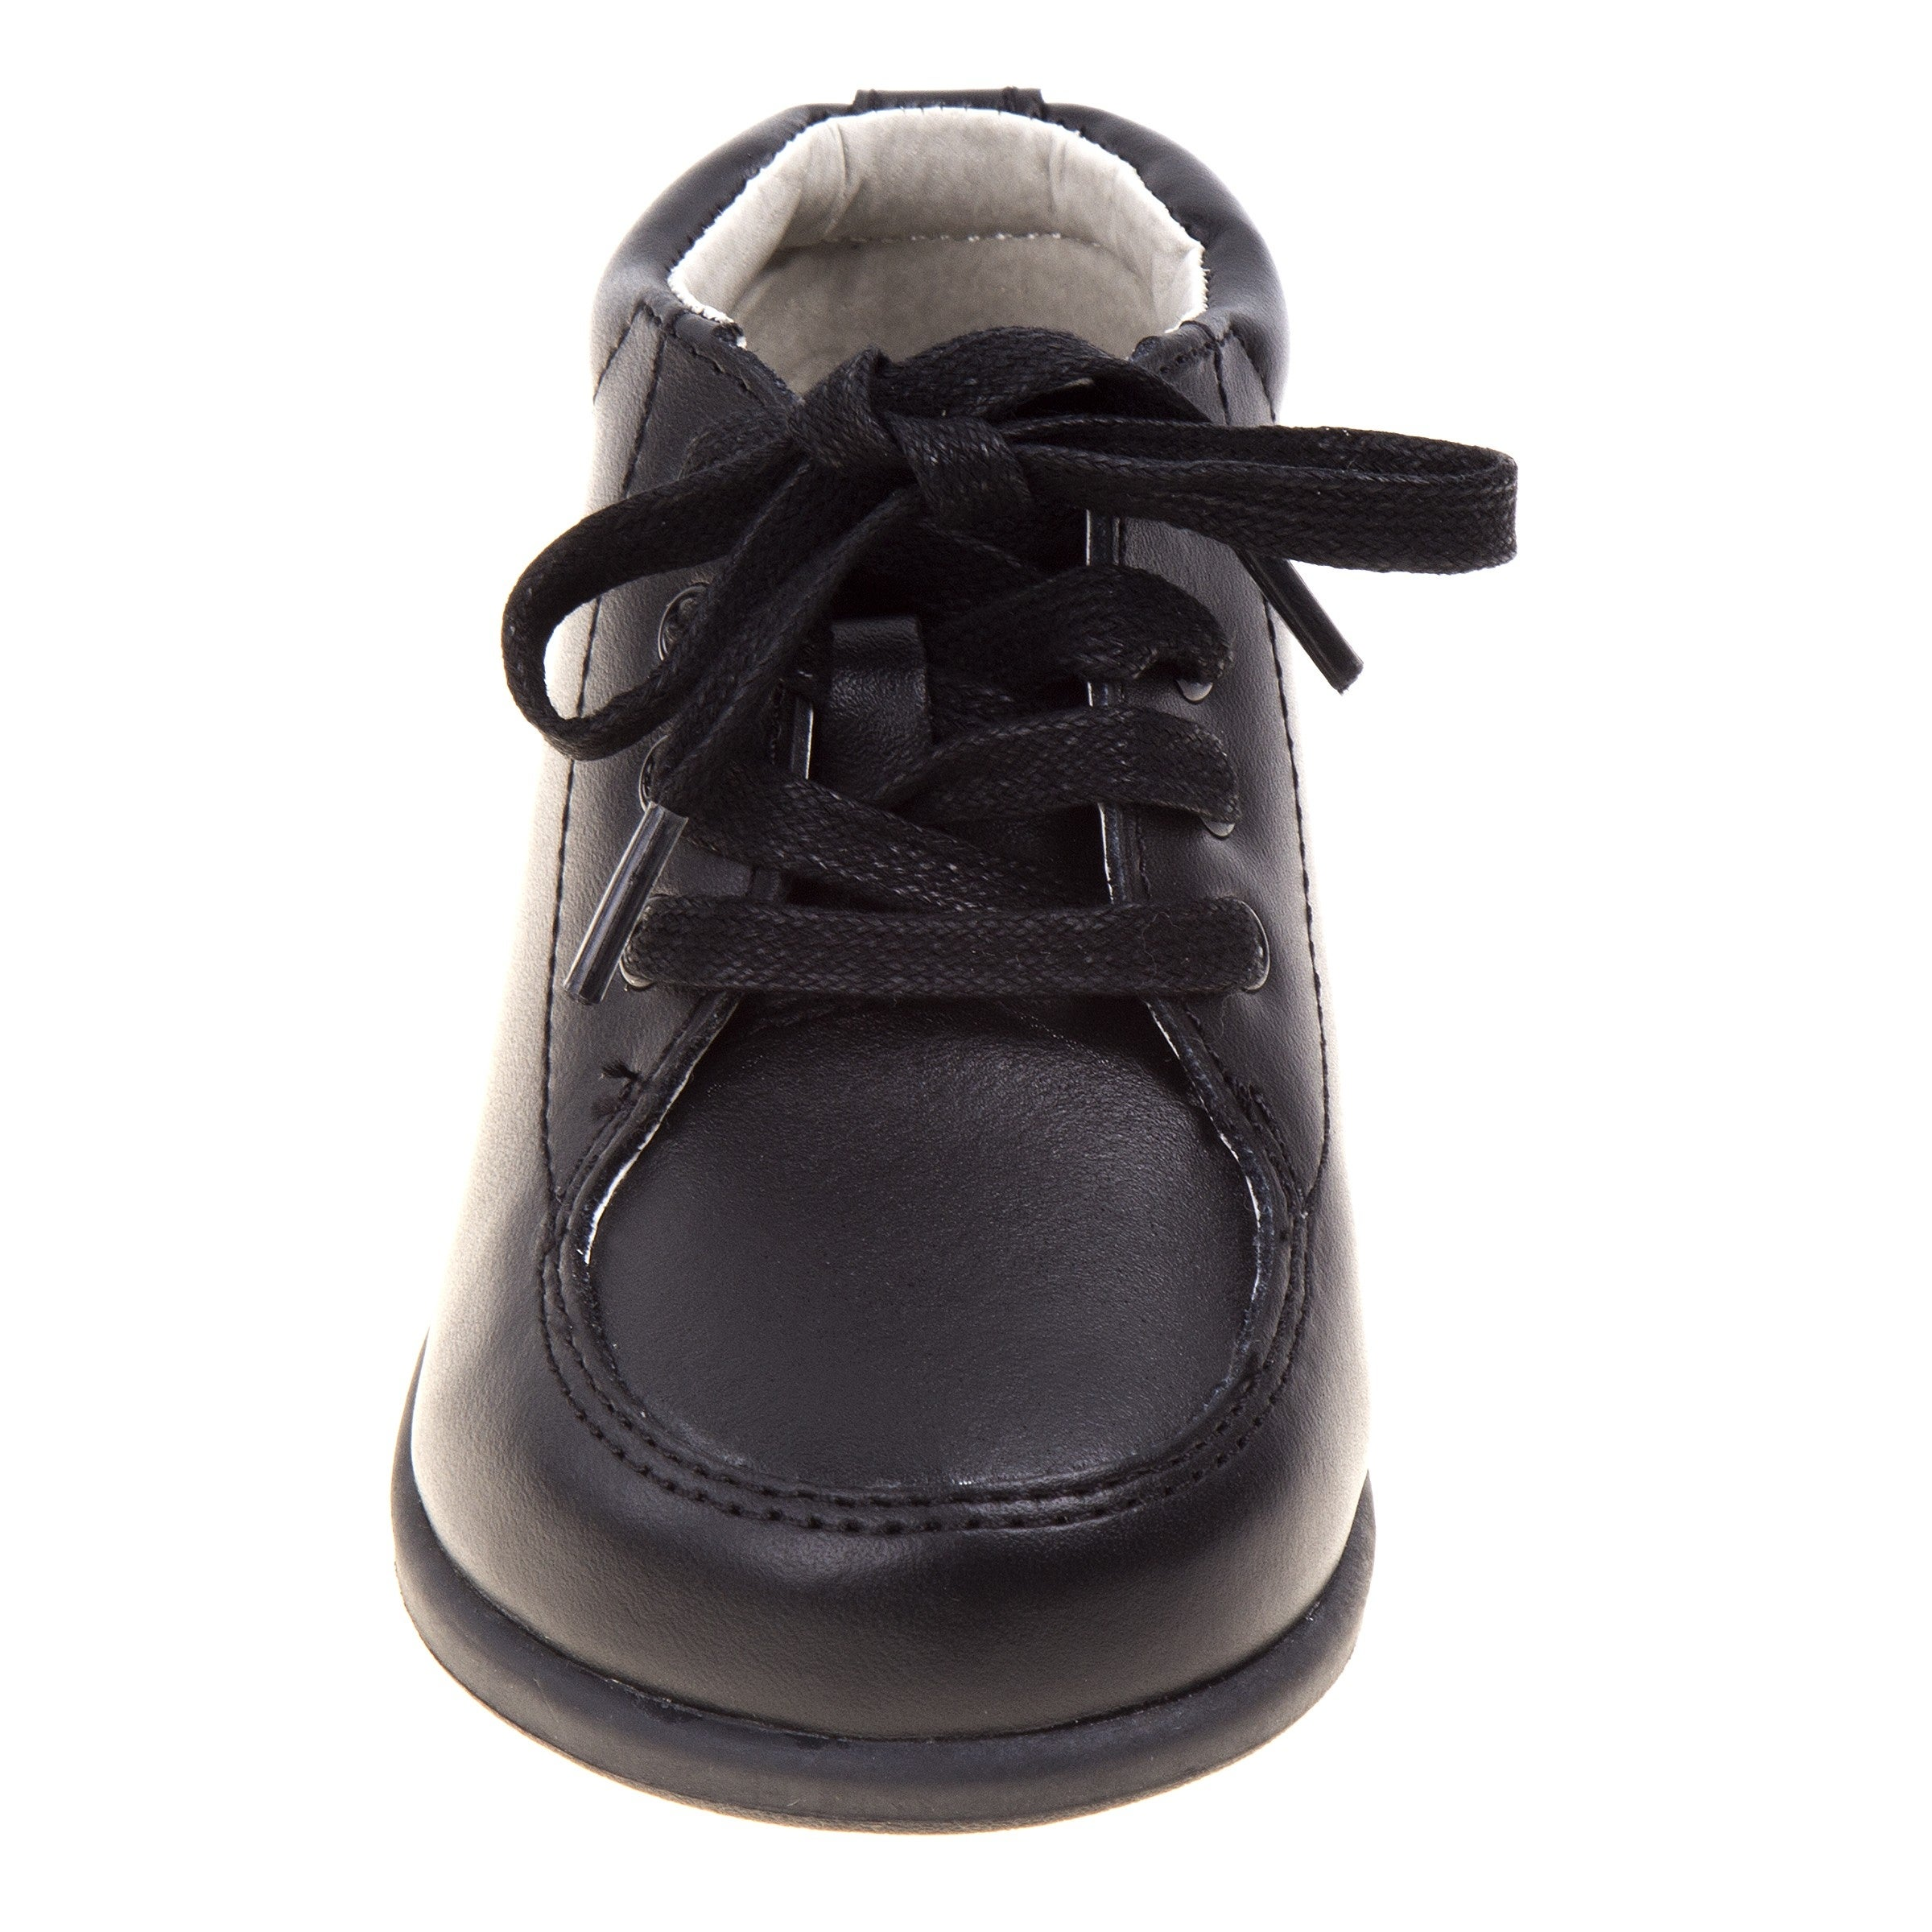 f2f402cc5cba Shop Smart Step Boys Black Lace Up Closure Medium Width Walking Shoes -  Free Shipping Today - Overstock - 25723815